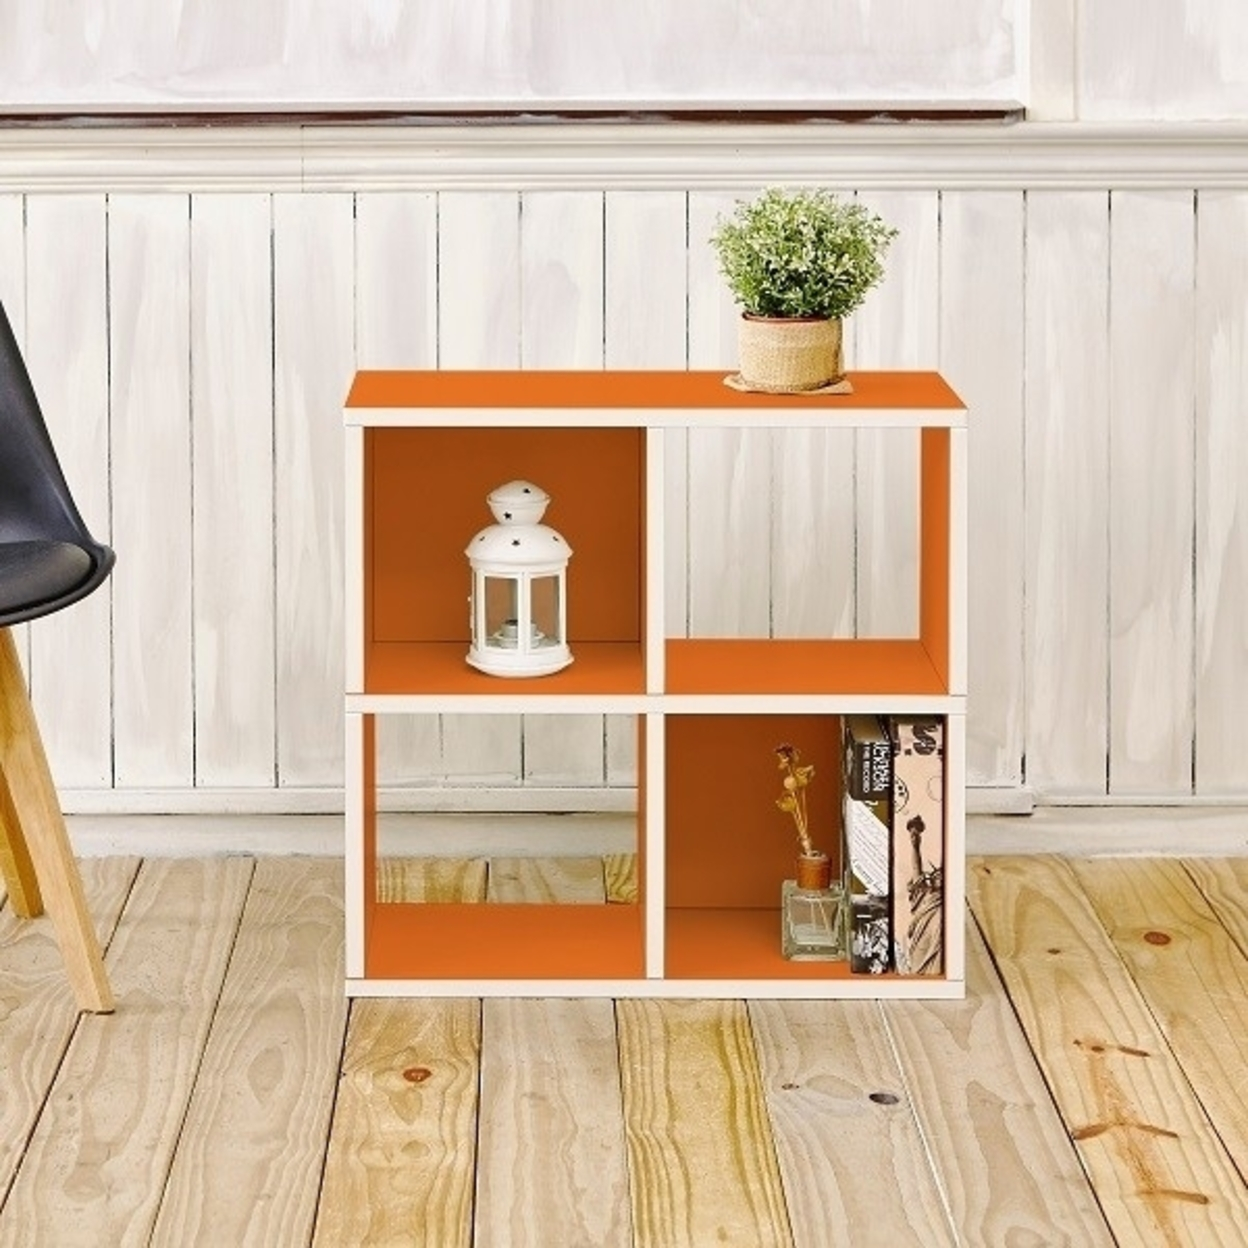 Eco Stackable Quad Cubby Organizer Orange Tool-free Assembly Non Toxic Lifetime Warranty